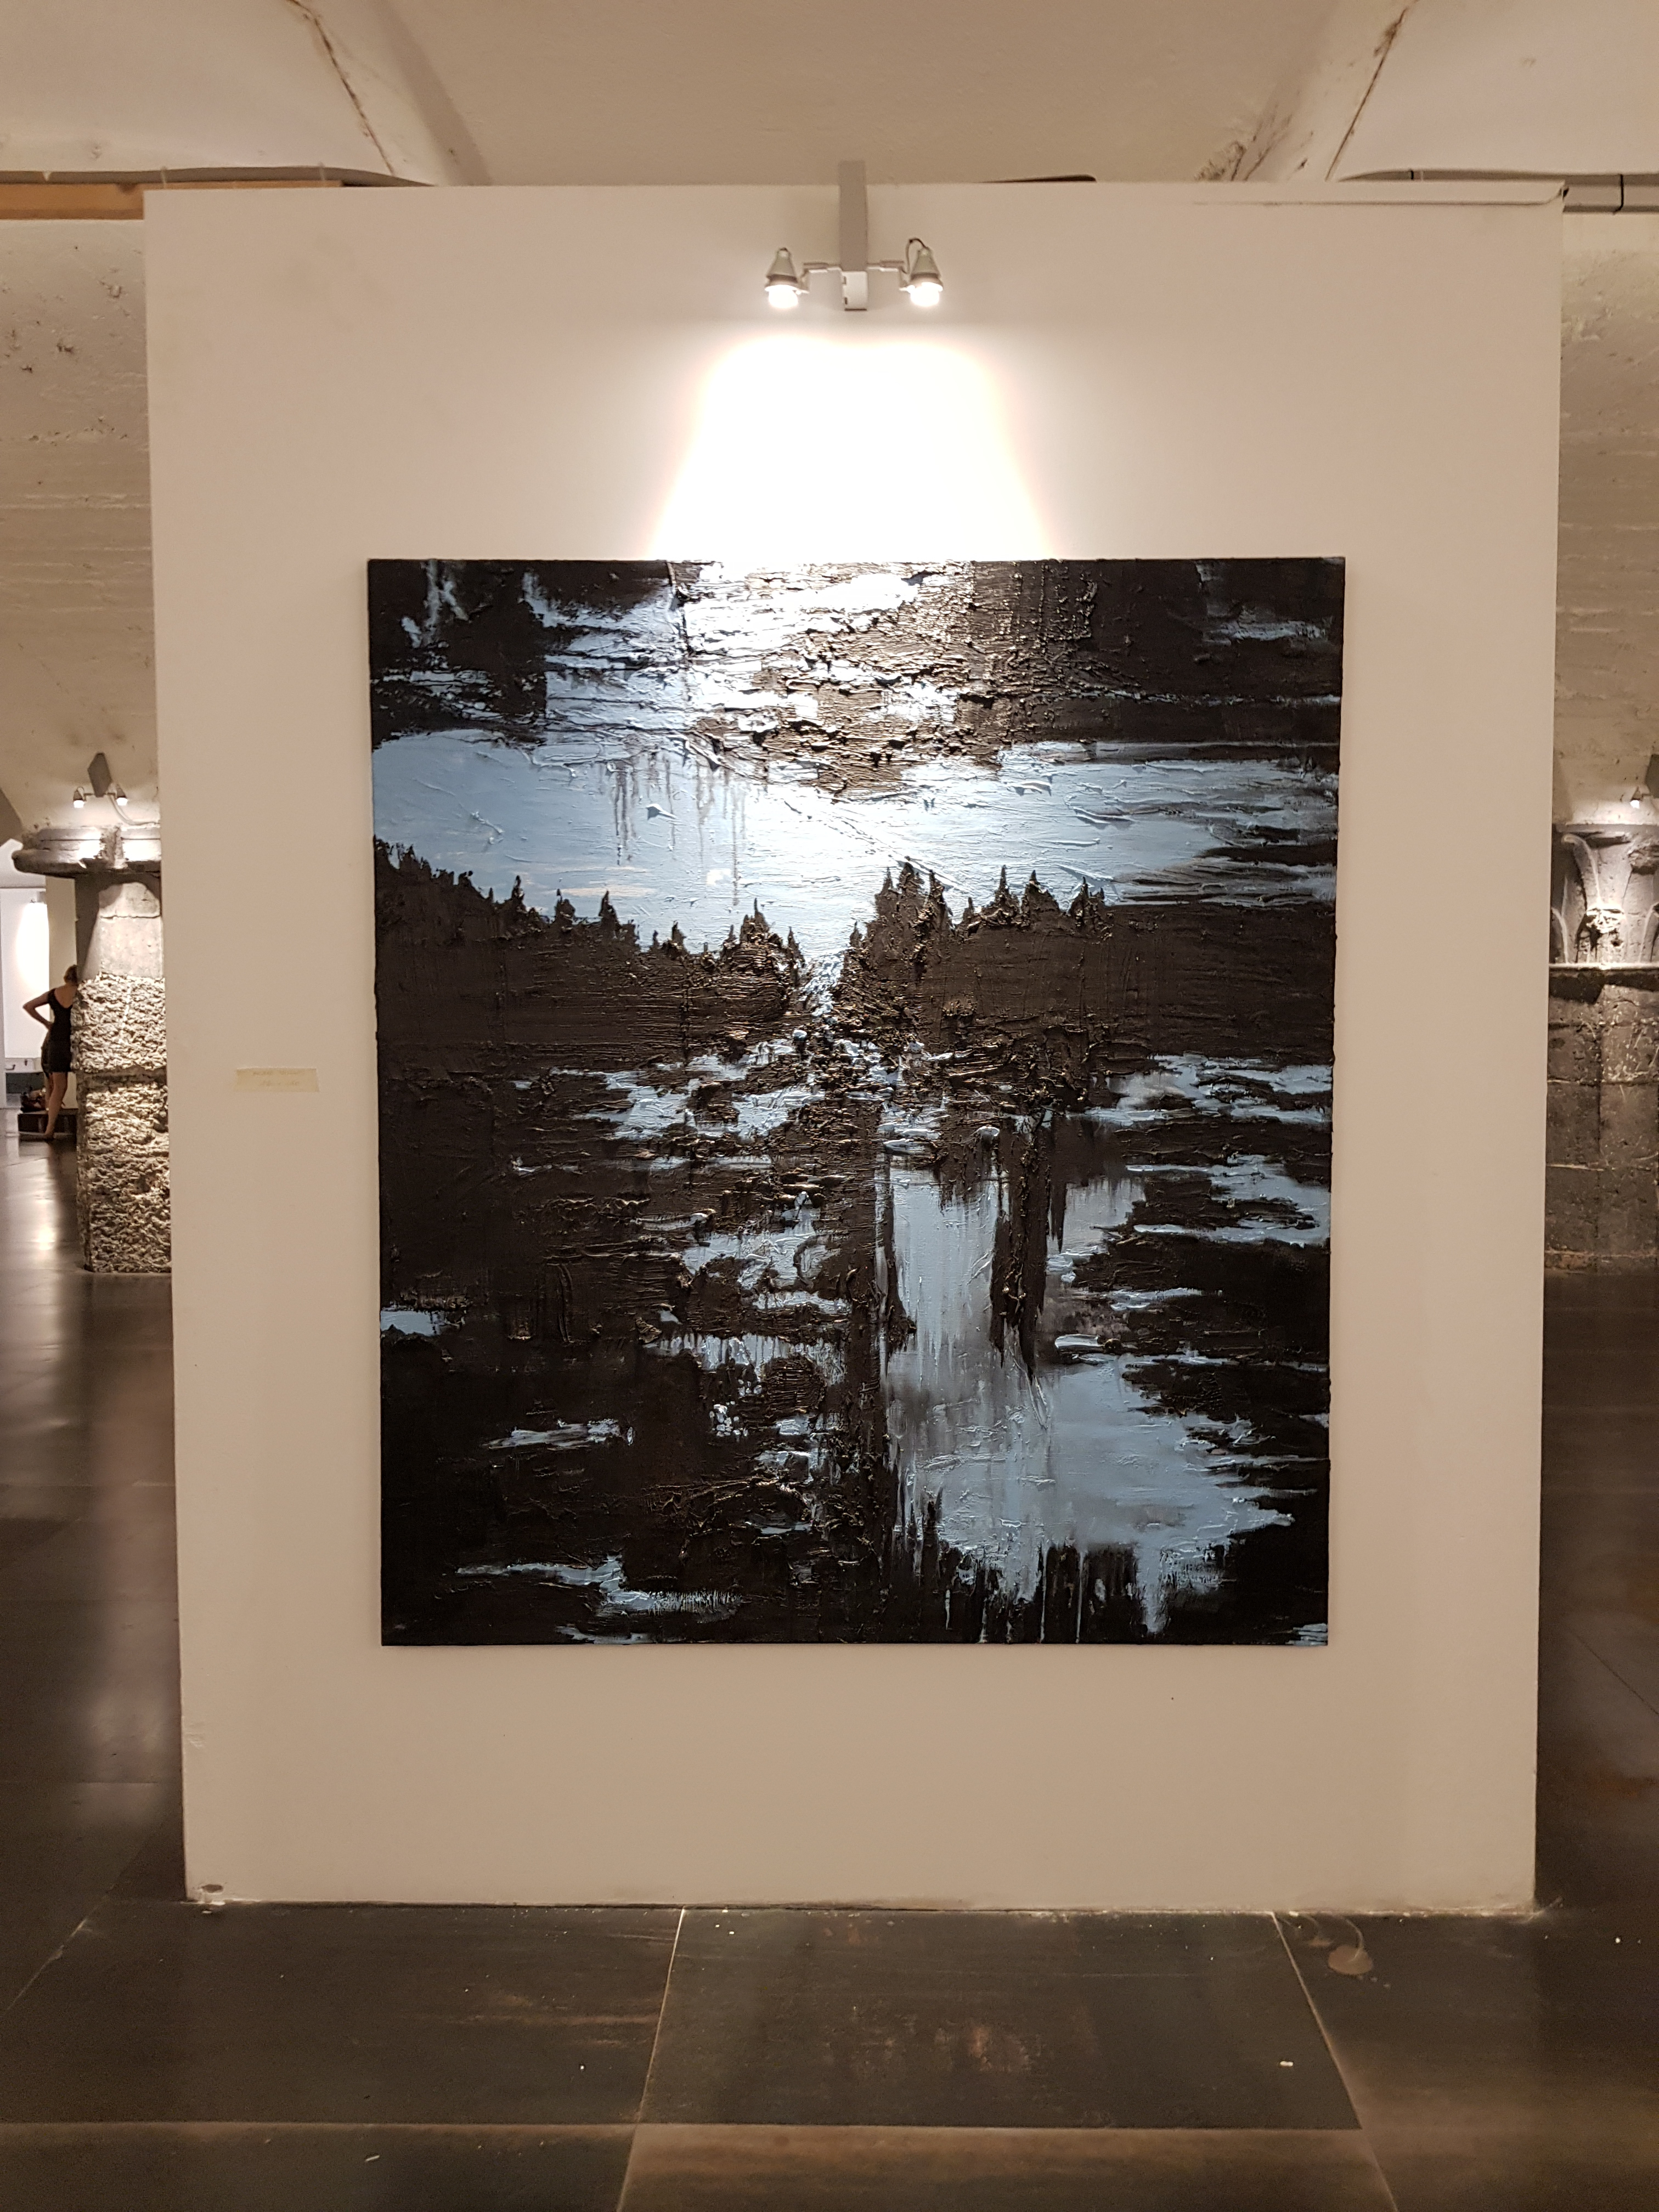 """Water & Light"", Biennale Le Latitudini dell'Arte Palazzo Ducale, International groupshow, Genua, Italy (2019) represented by Livingstone Gallery"